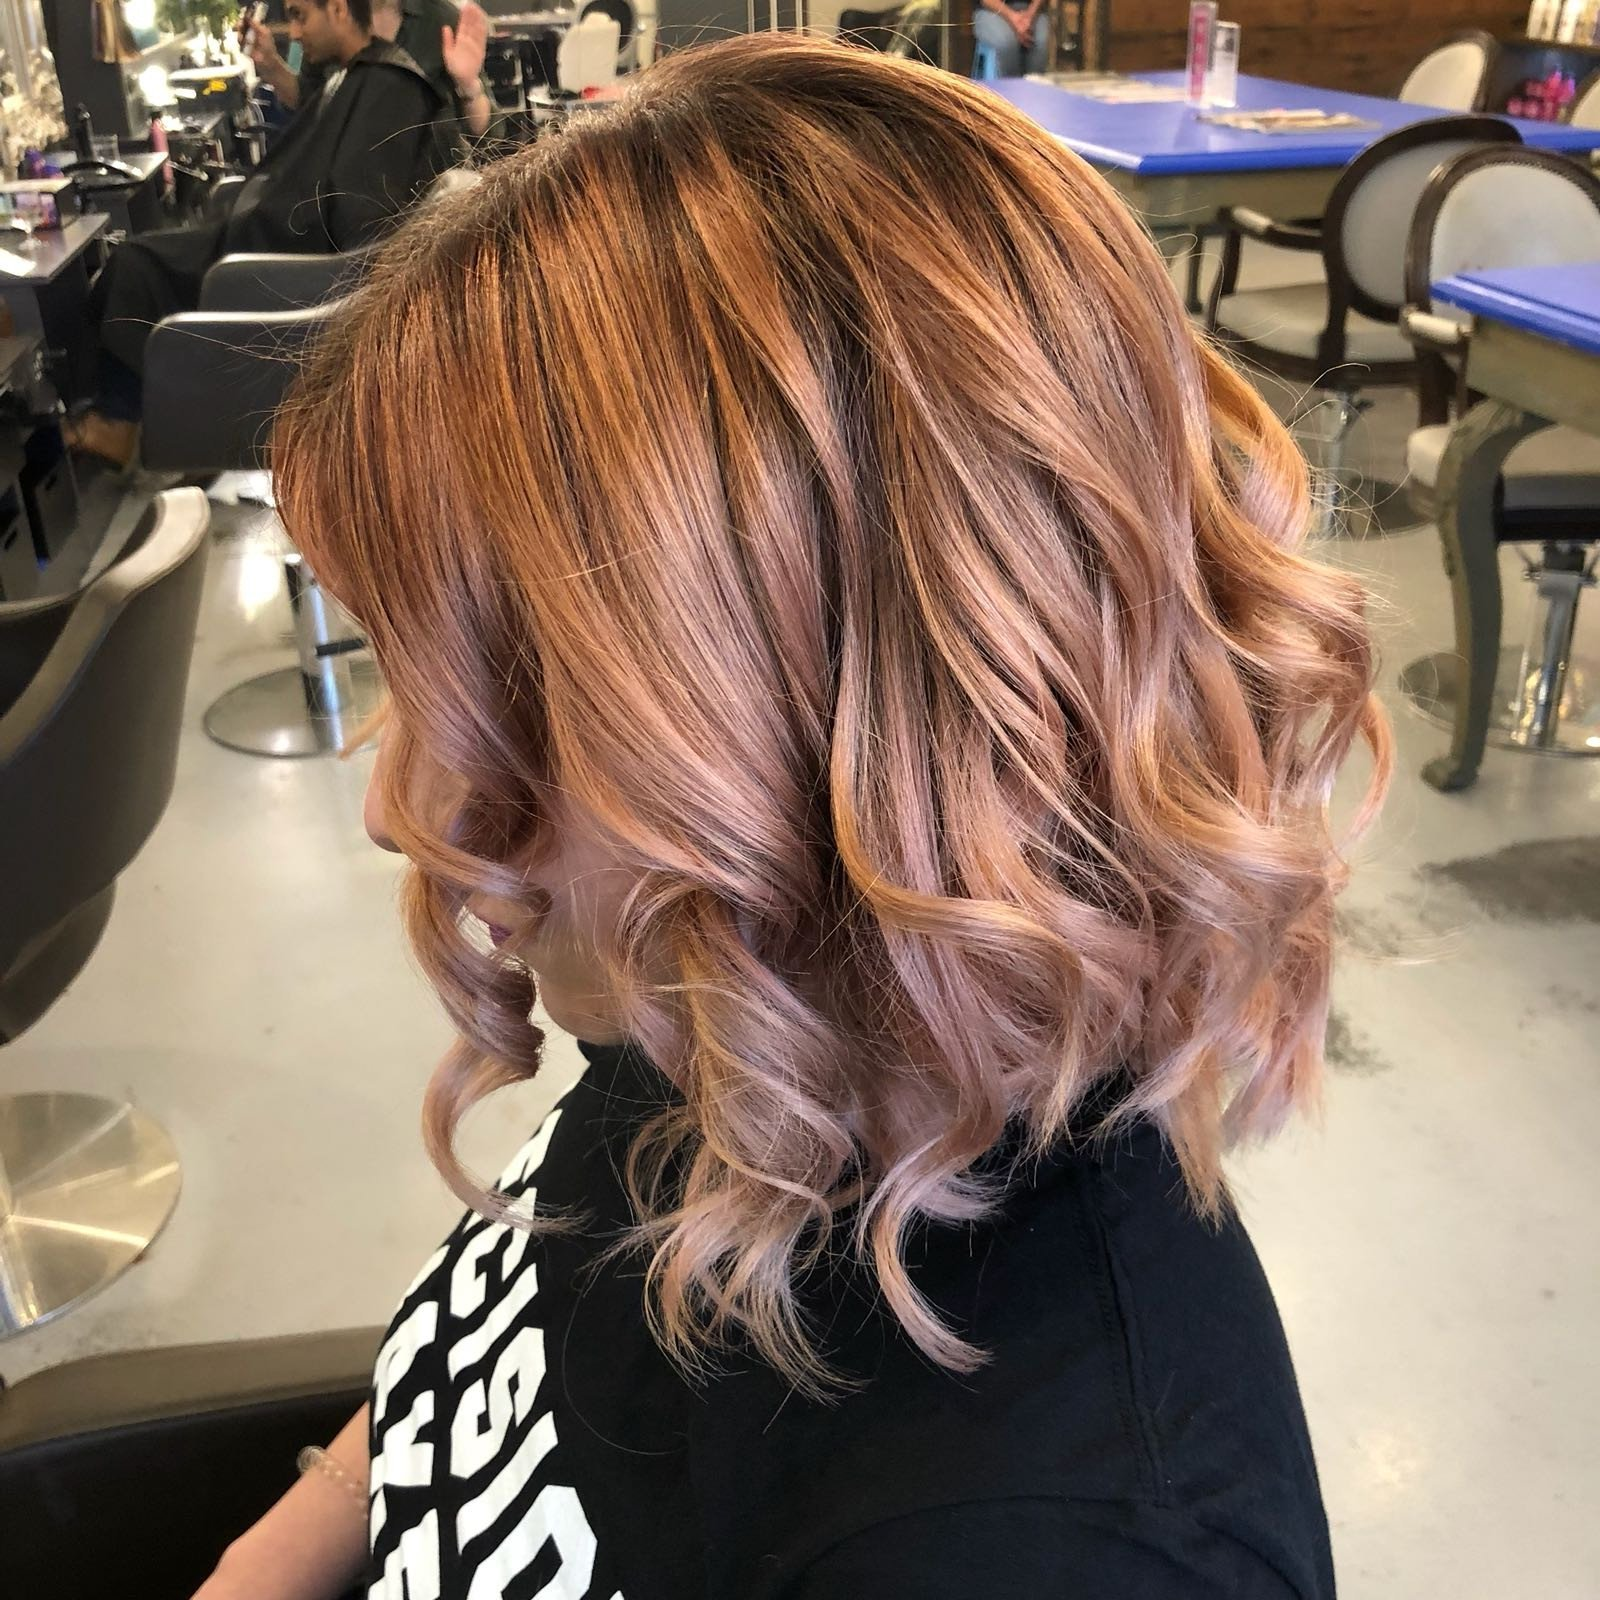 New 2019 Hair Color Trends Ideas With Pictures